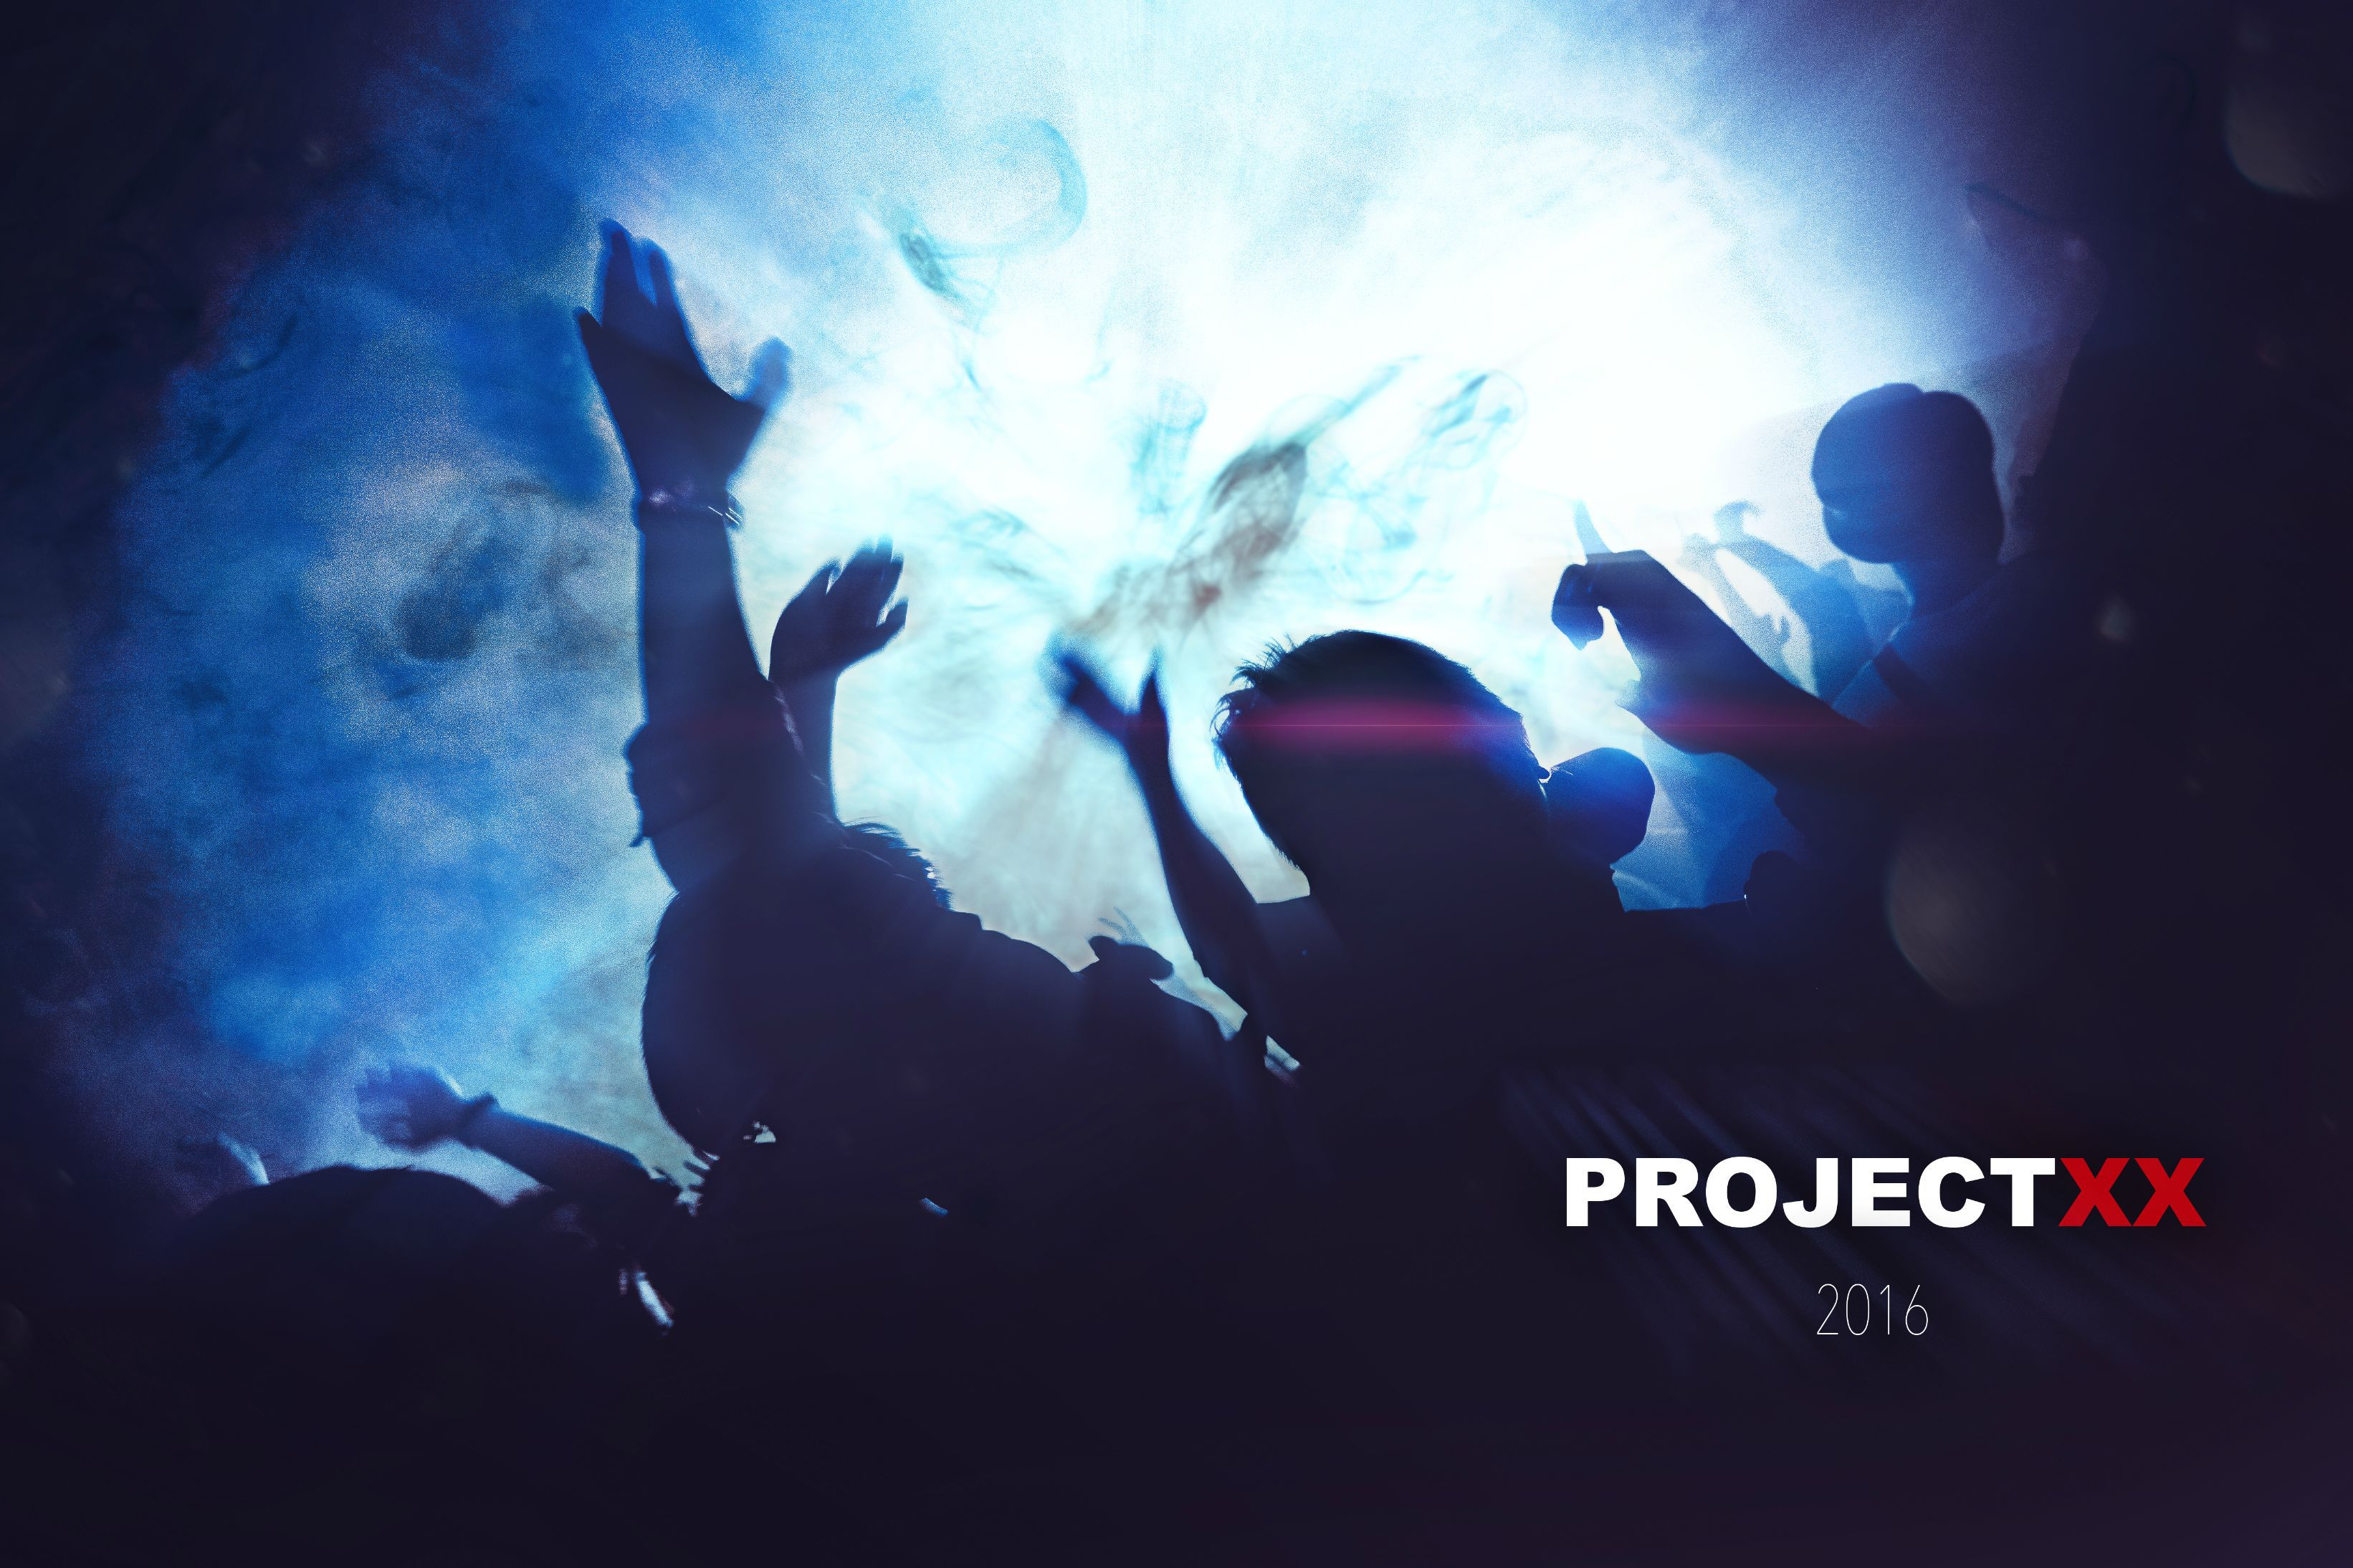 Project XX Wallpapers